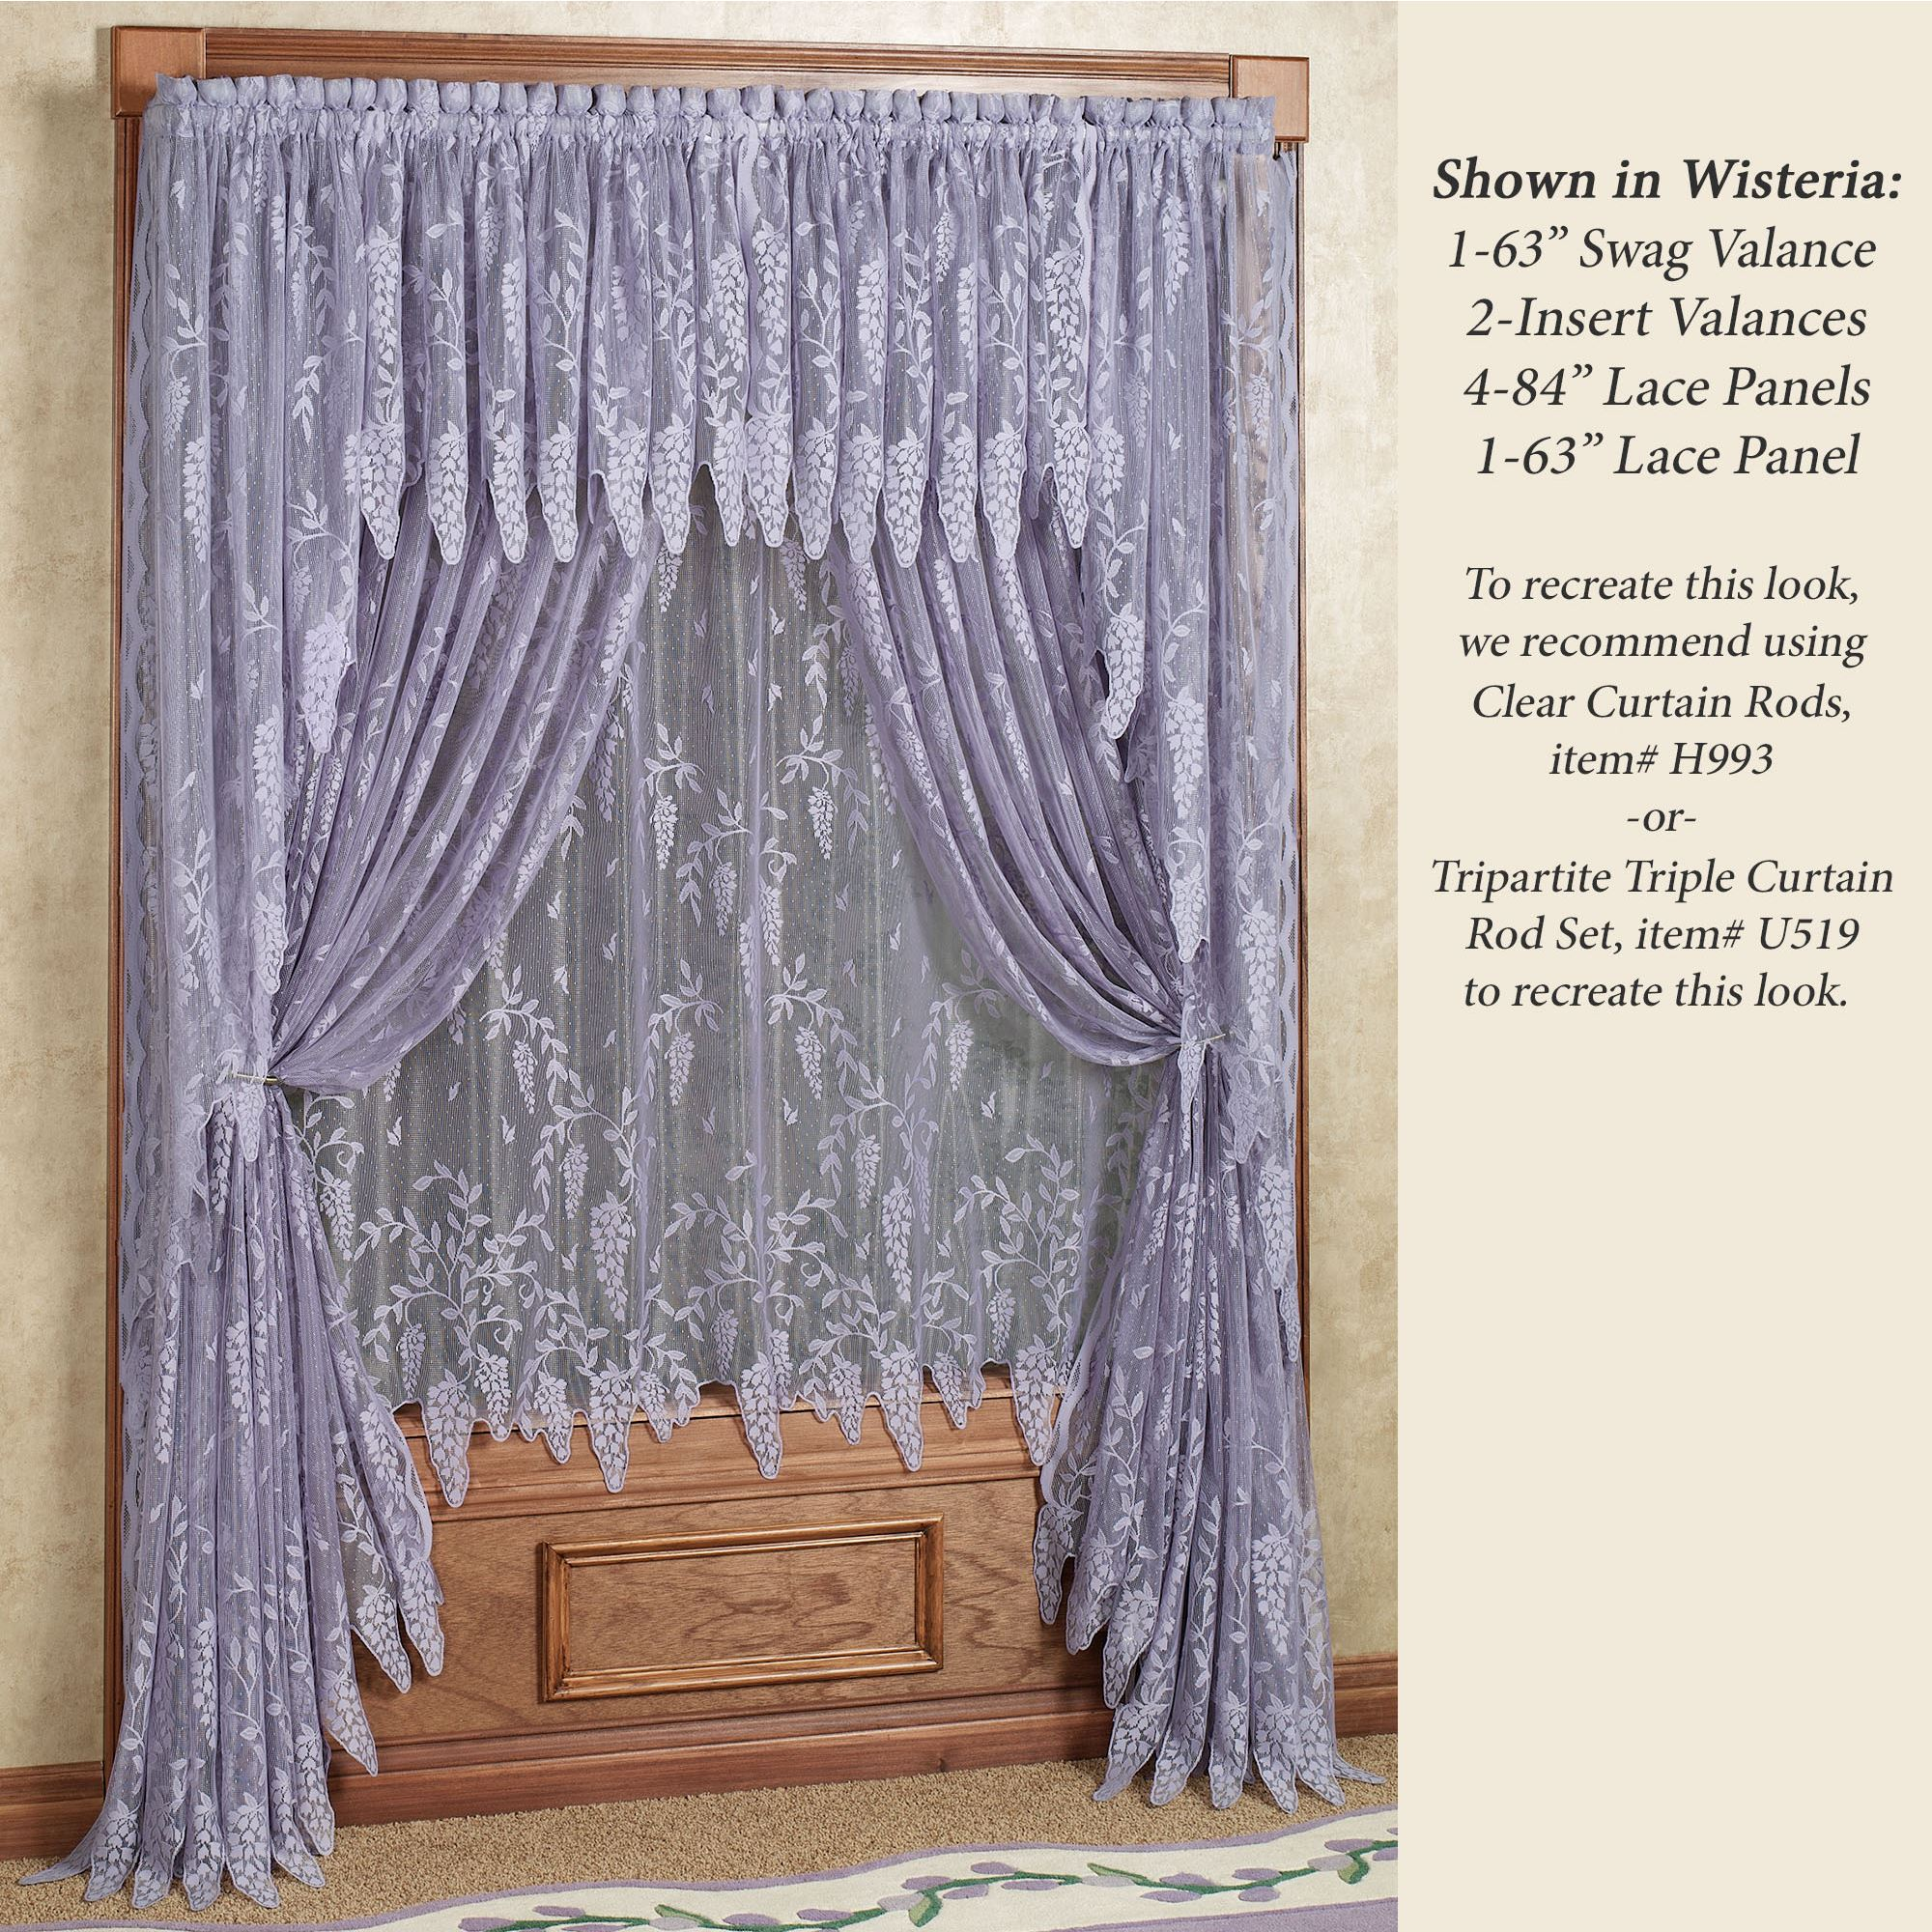 damask silver with gray lilac and purple accent rod valance trim carousel valances window large pocket